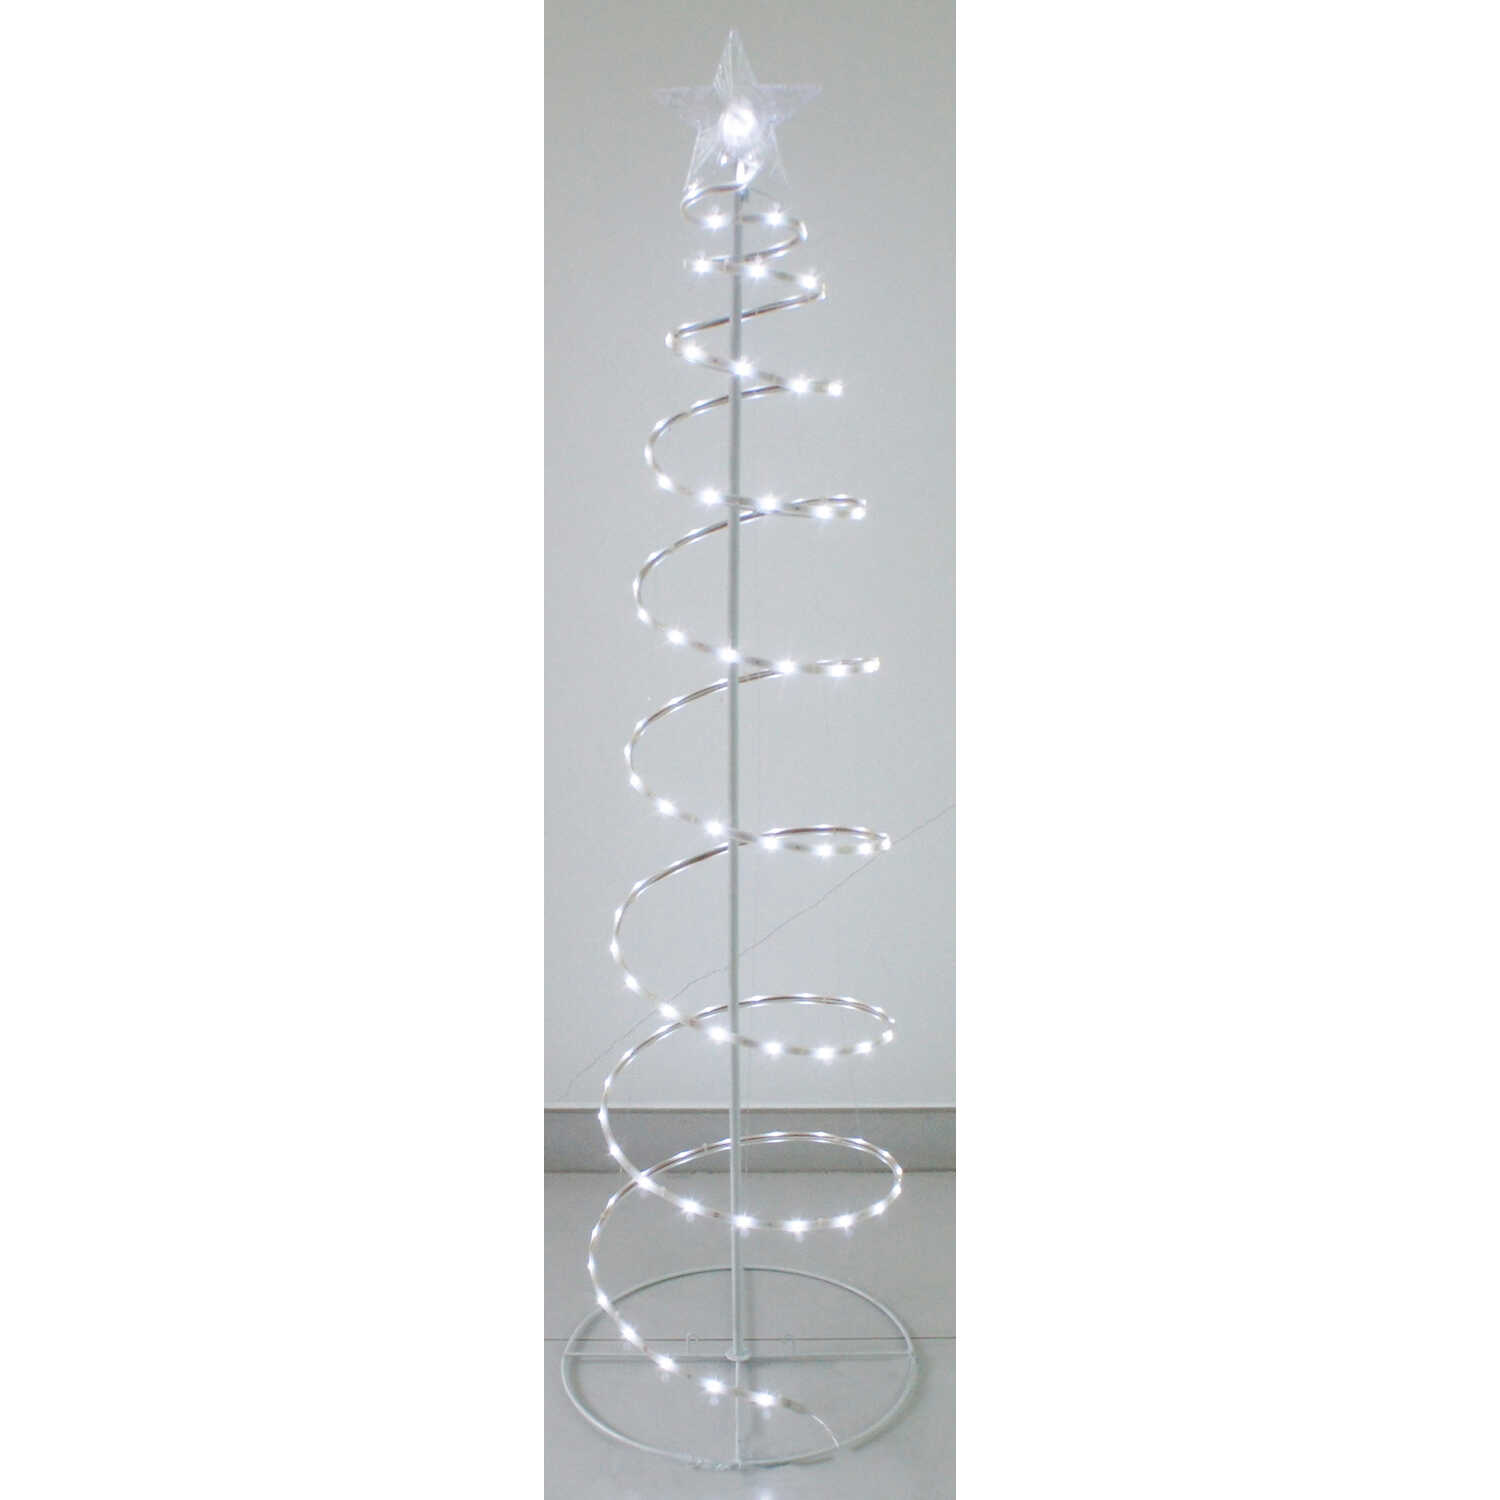 Sienna  Spiral Tape  String Tree  White  Metal